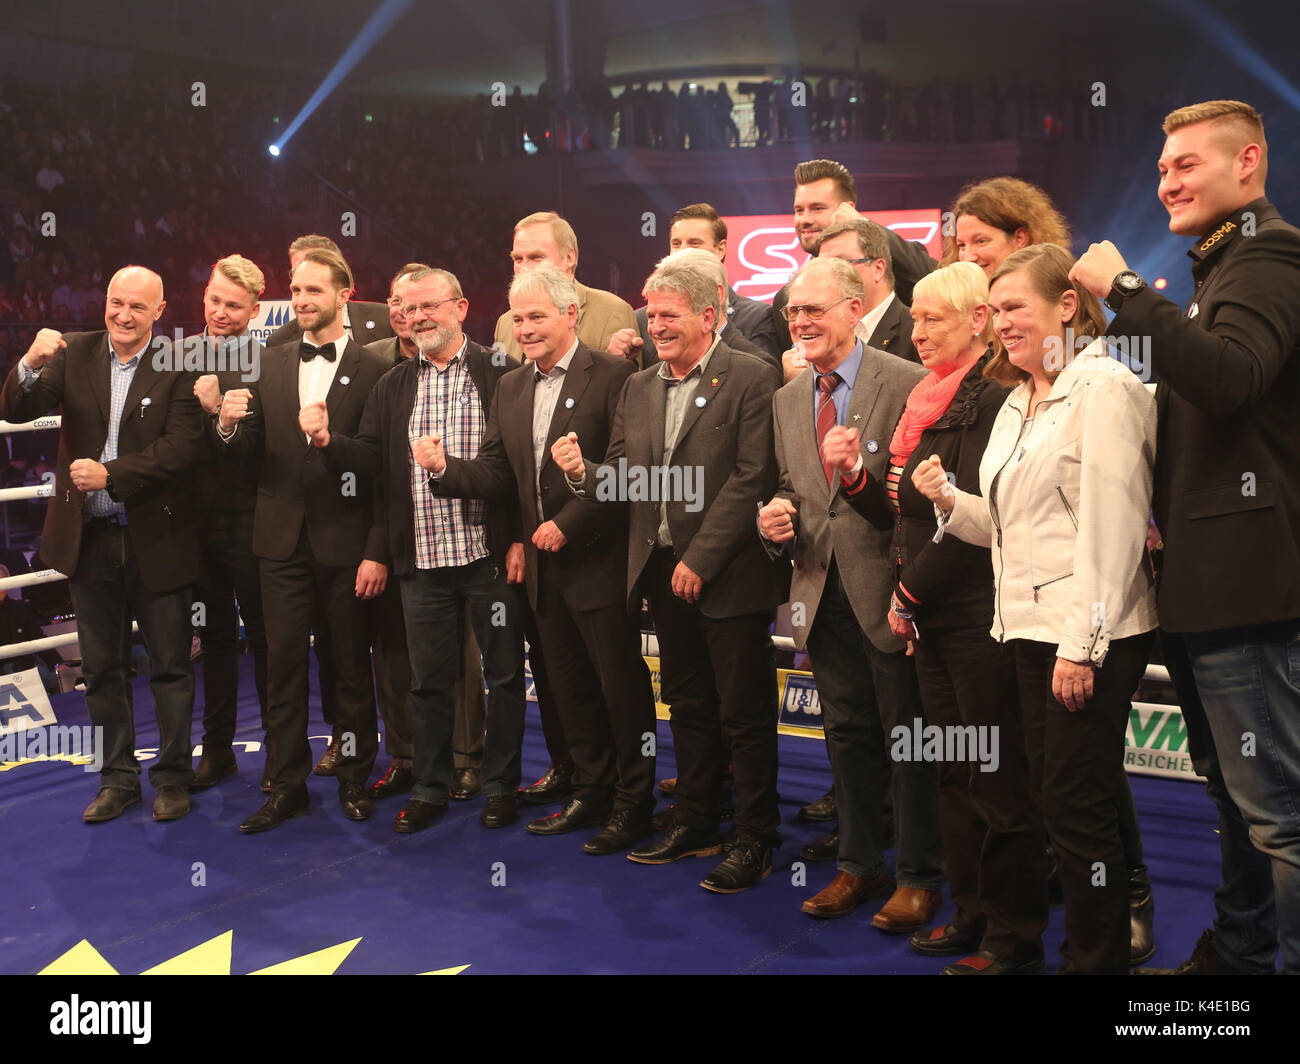 Sportgrößen From Magdeburg As Guests In The Ring During The Ses, Box, Gala On 121116 In The Getec Arena Magdeburg - Stock Image